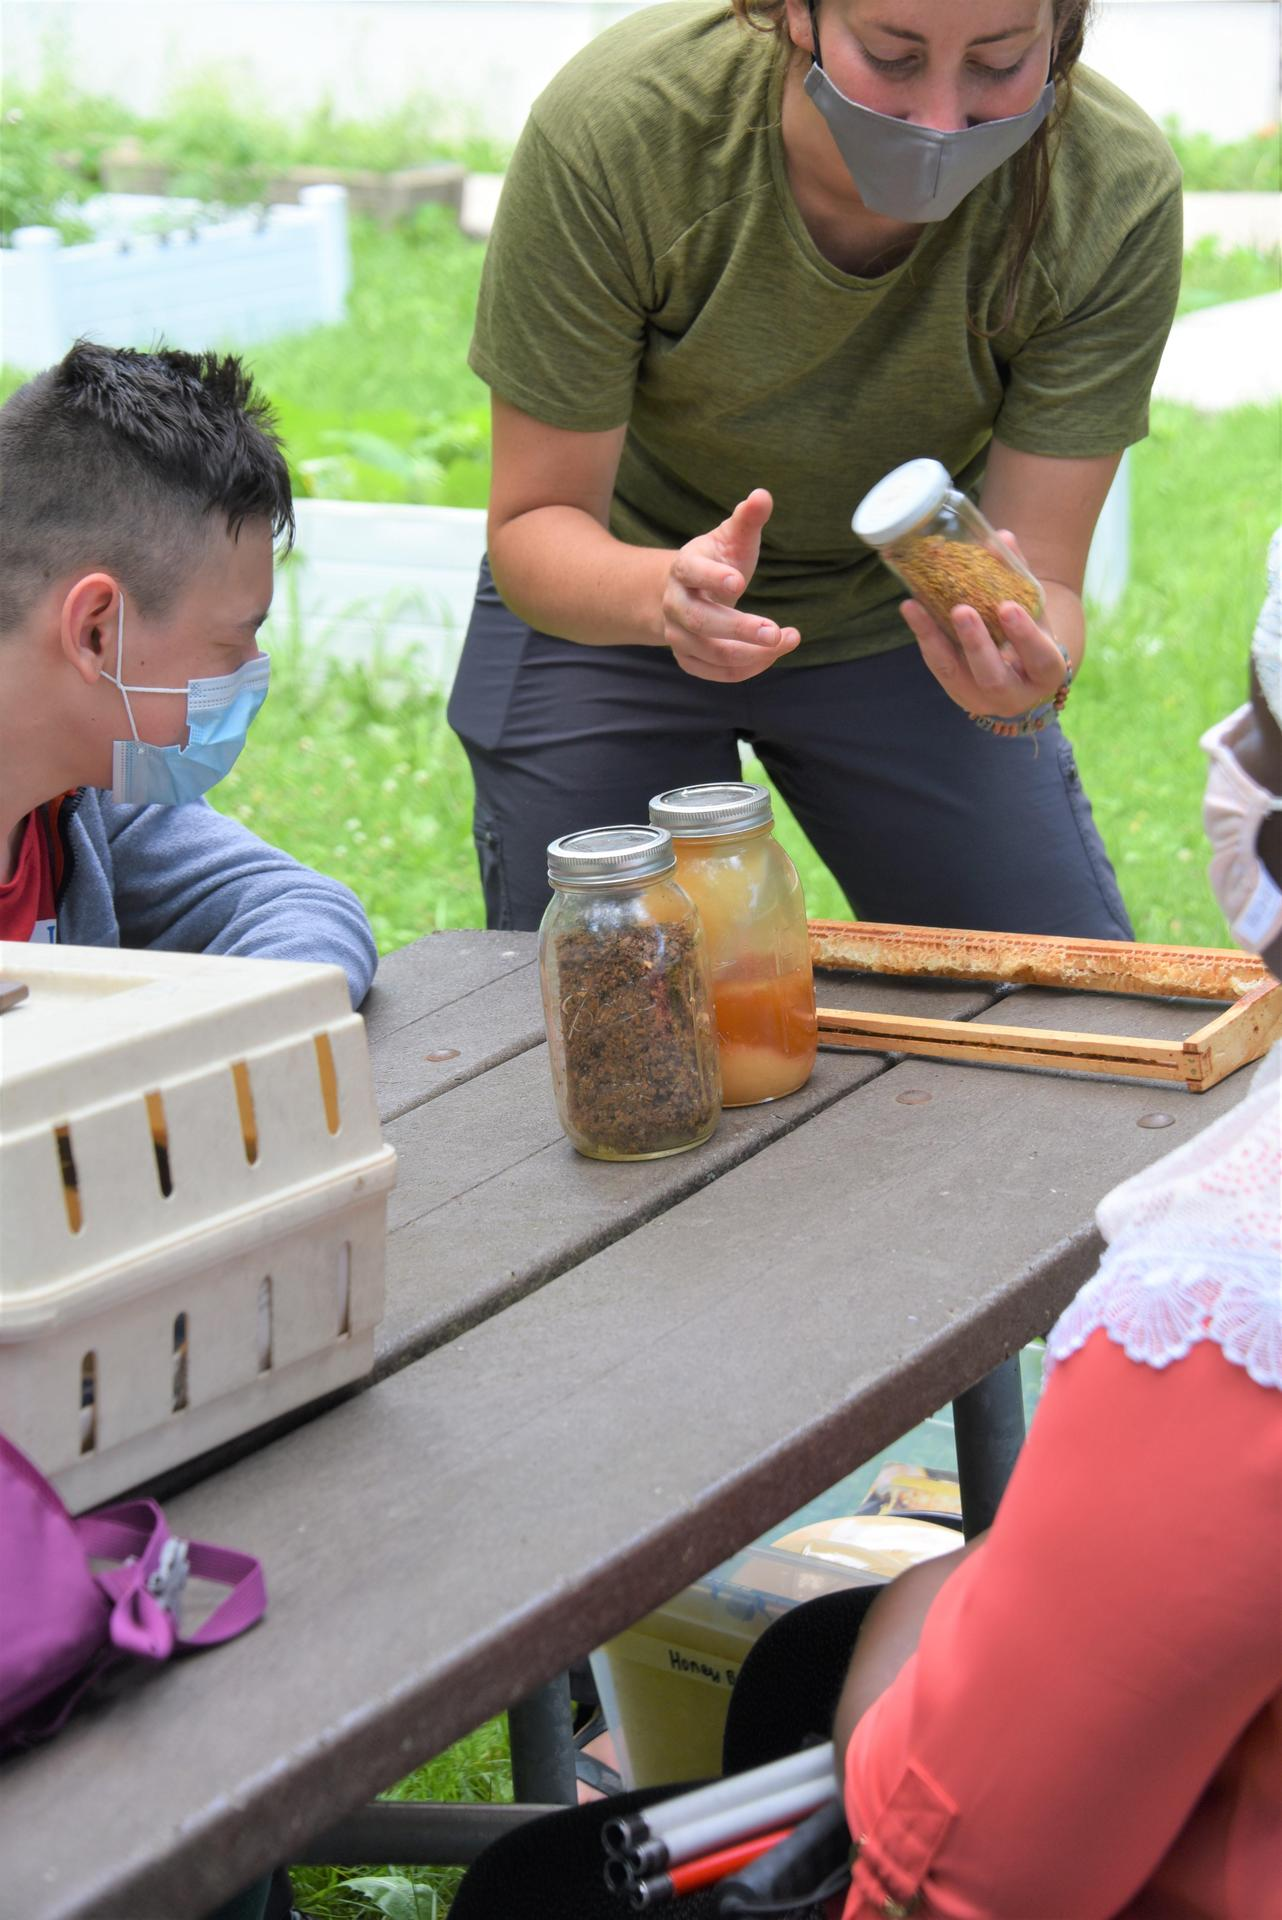 A woman stands in front of students at a picnic table holding a jar of pollen